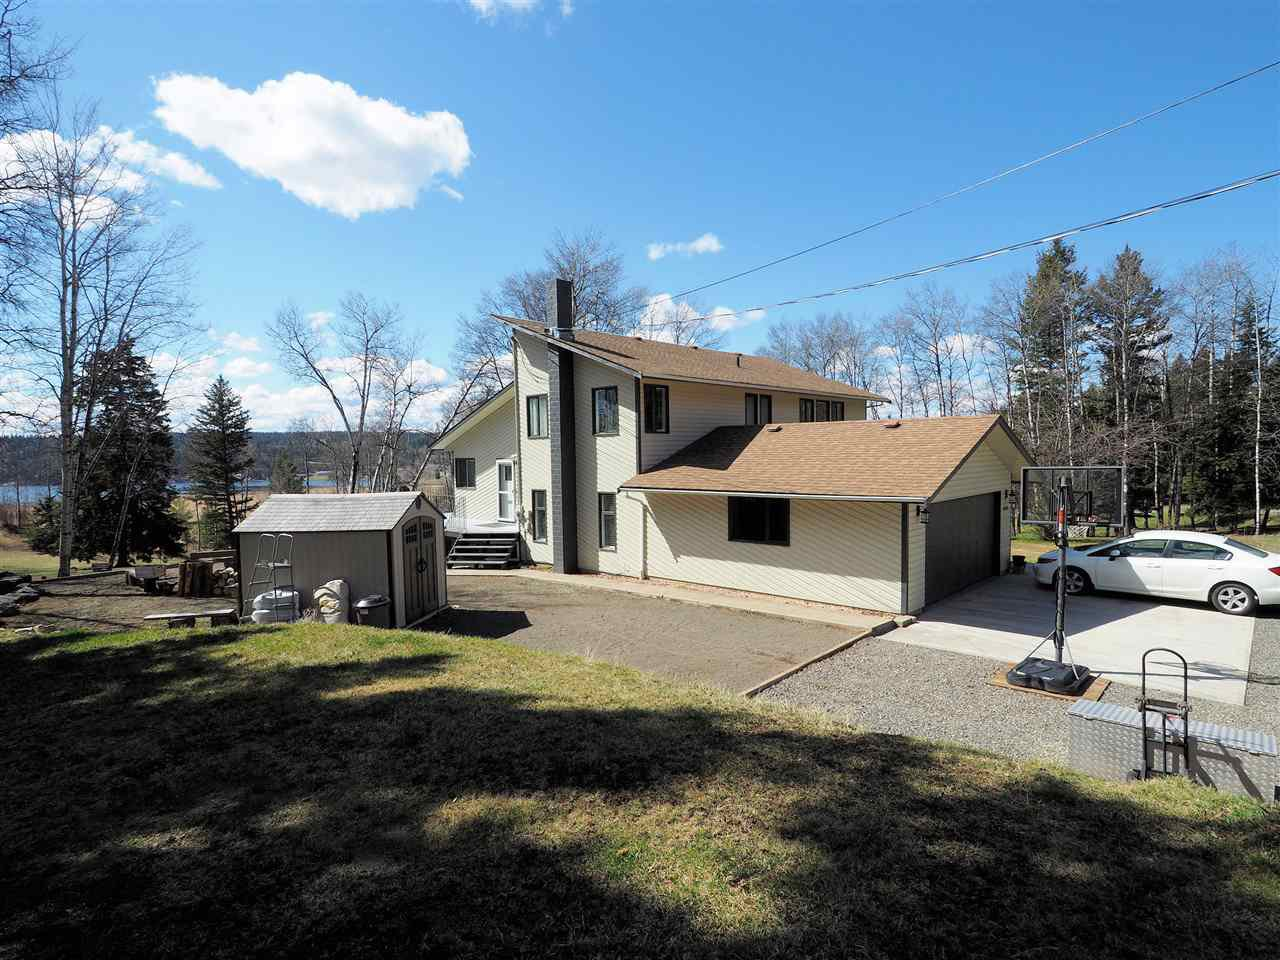 Photo 2: Photos: 6265 MERKLEY Crescent: Horse Lake House for sale (100 Mile House (Zone 10))  : MLS®# R2363616